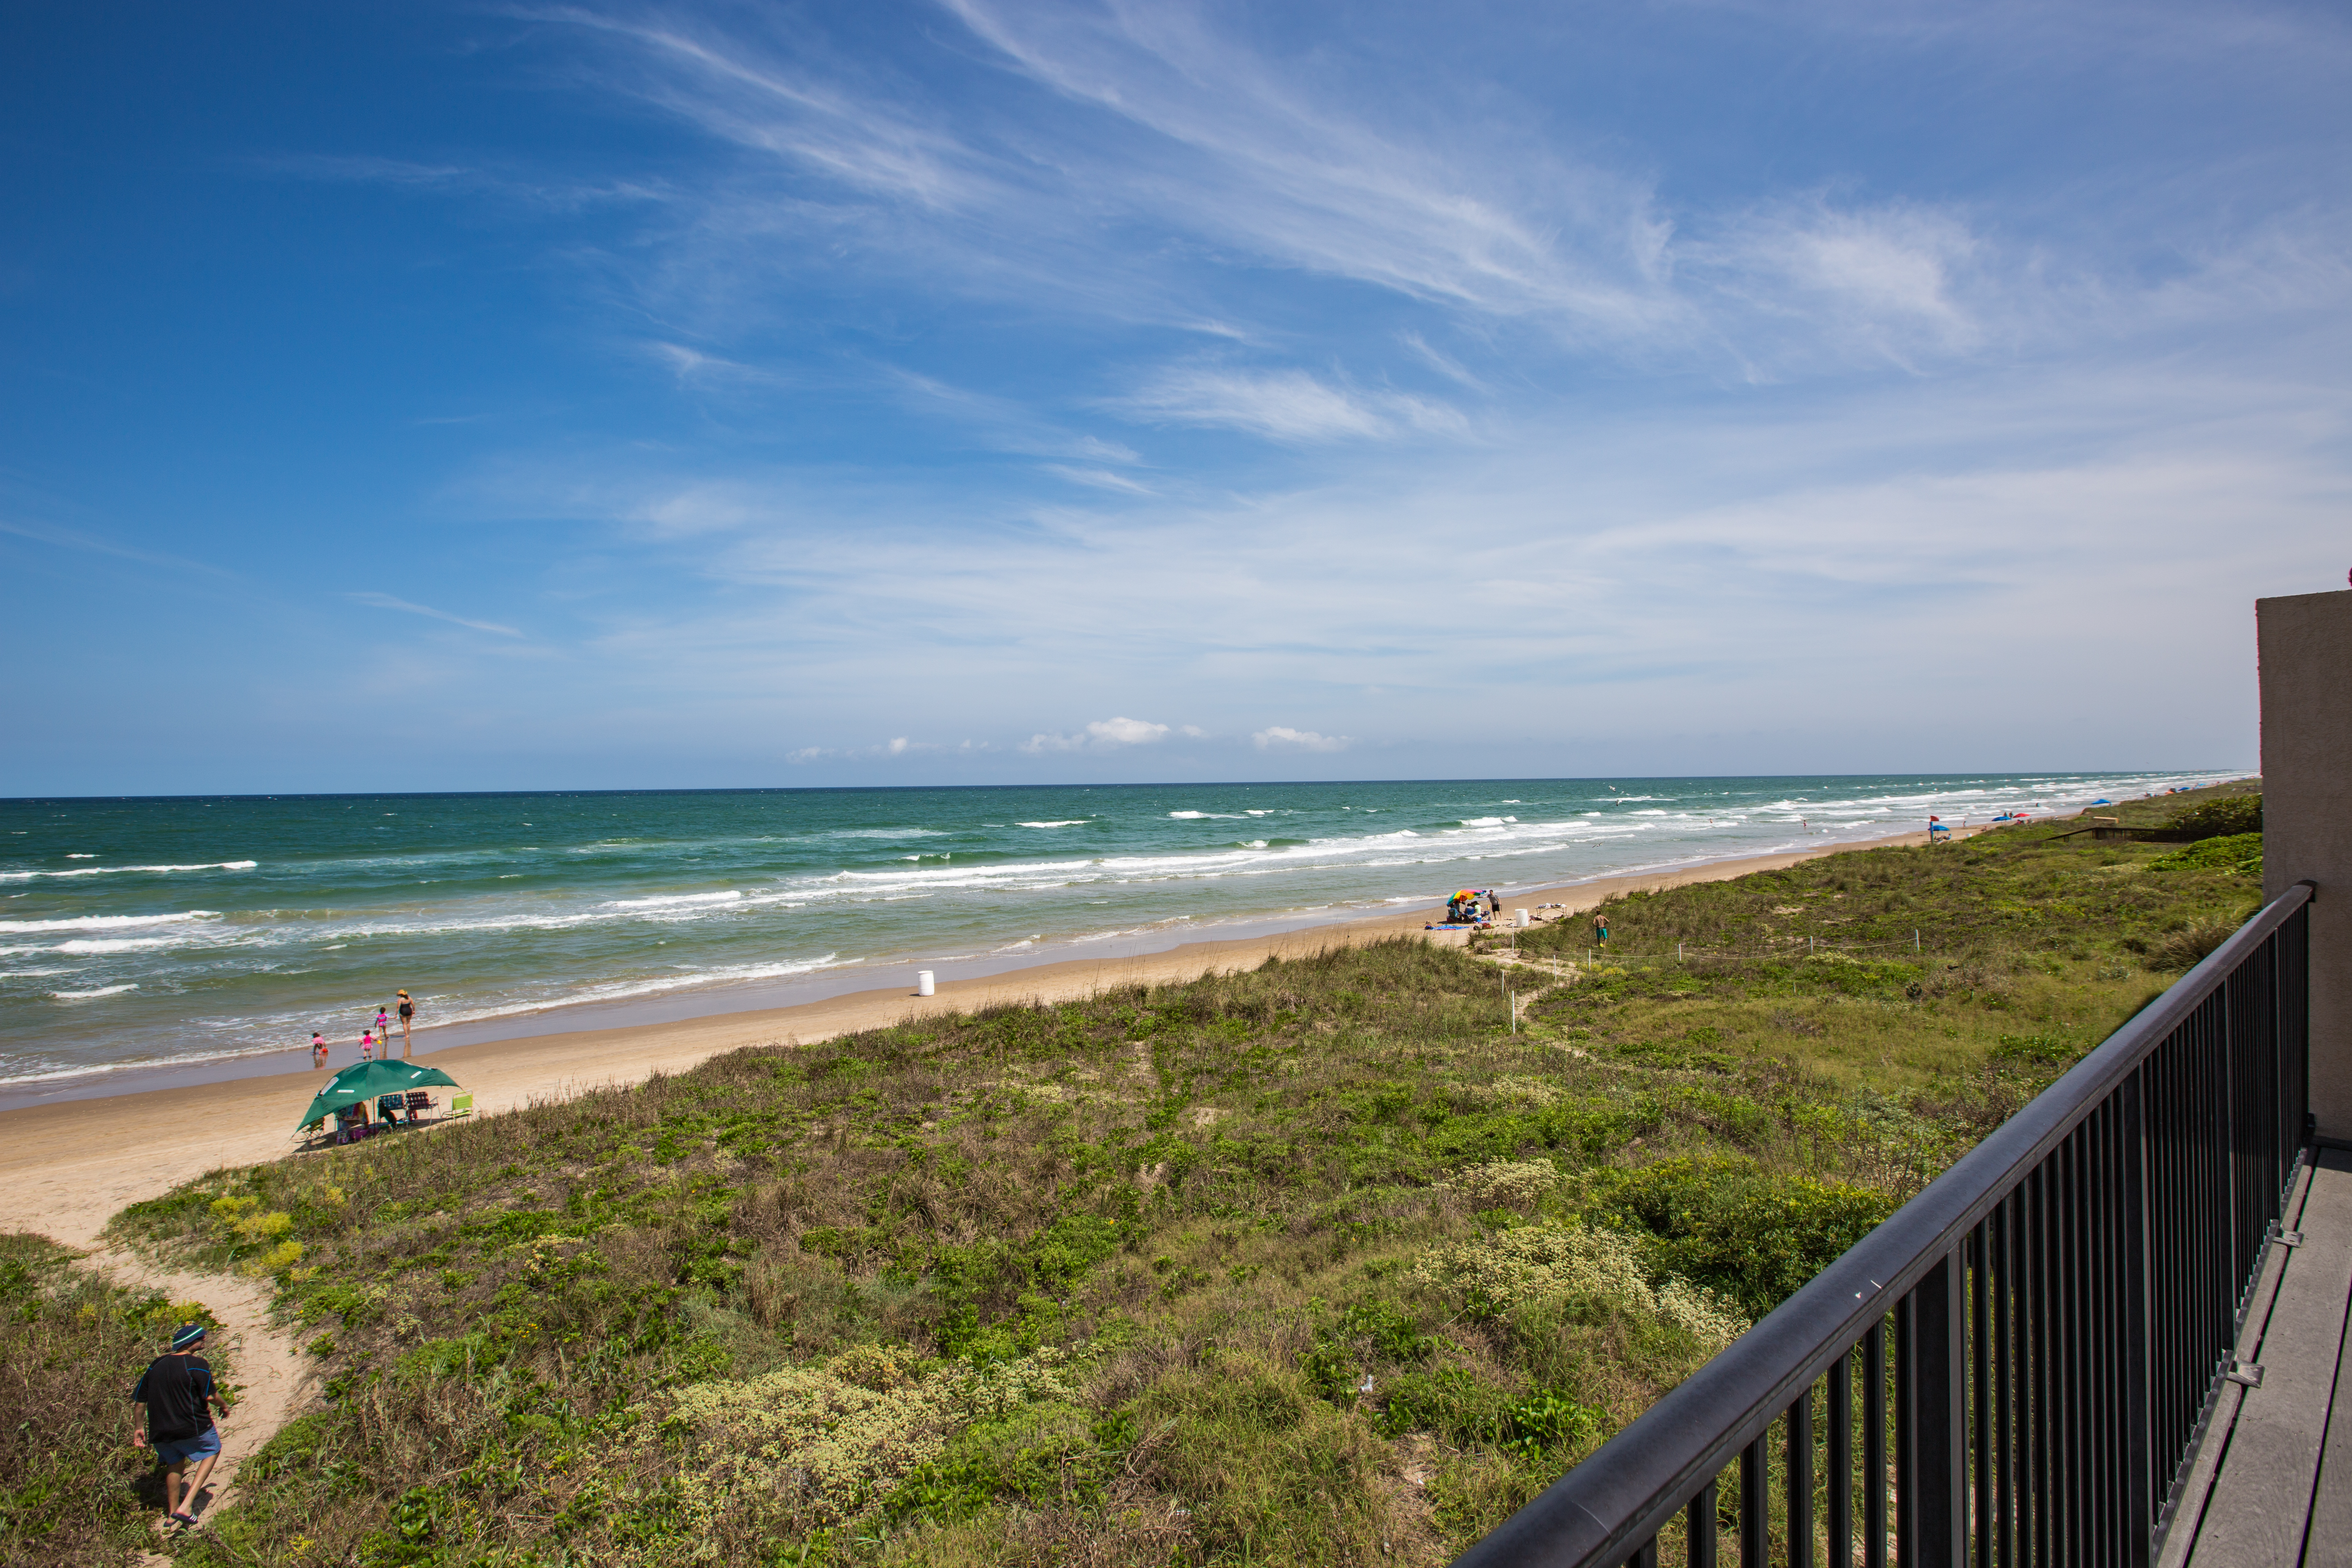 Ocean View vacation rental in South Padre Island on the beach with 4 bedrooms and pool